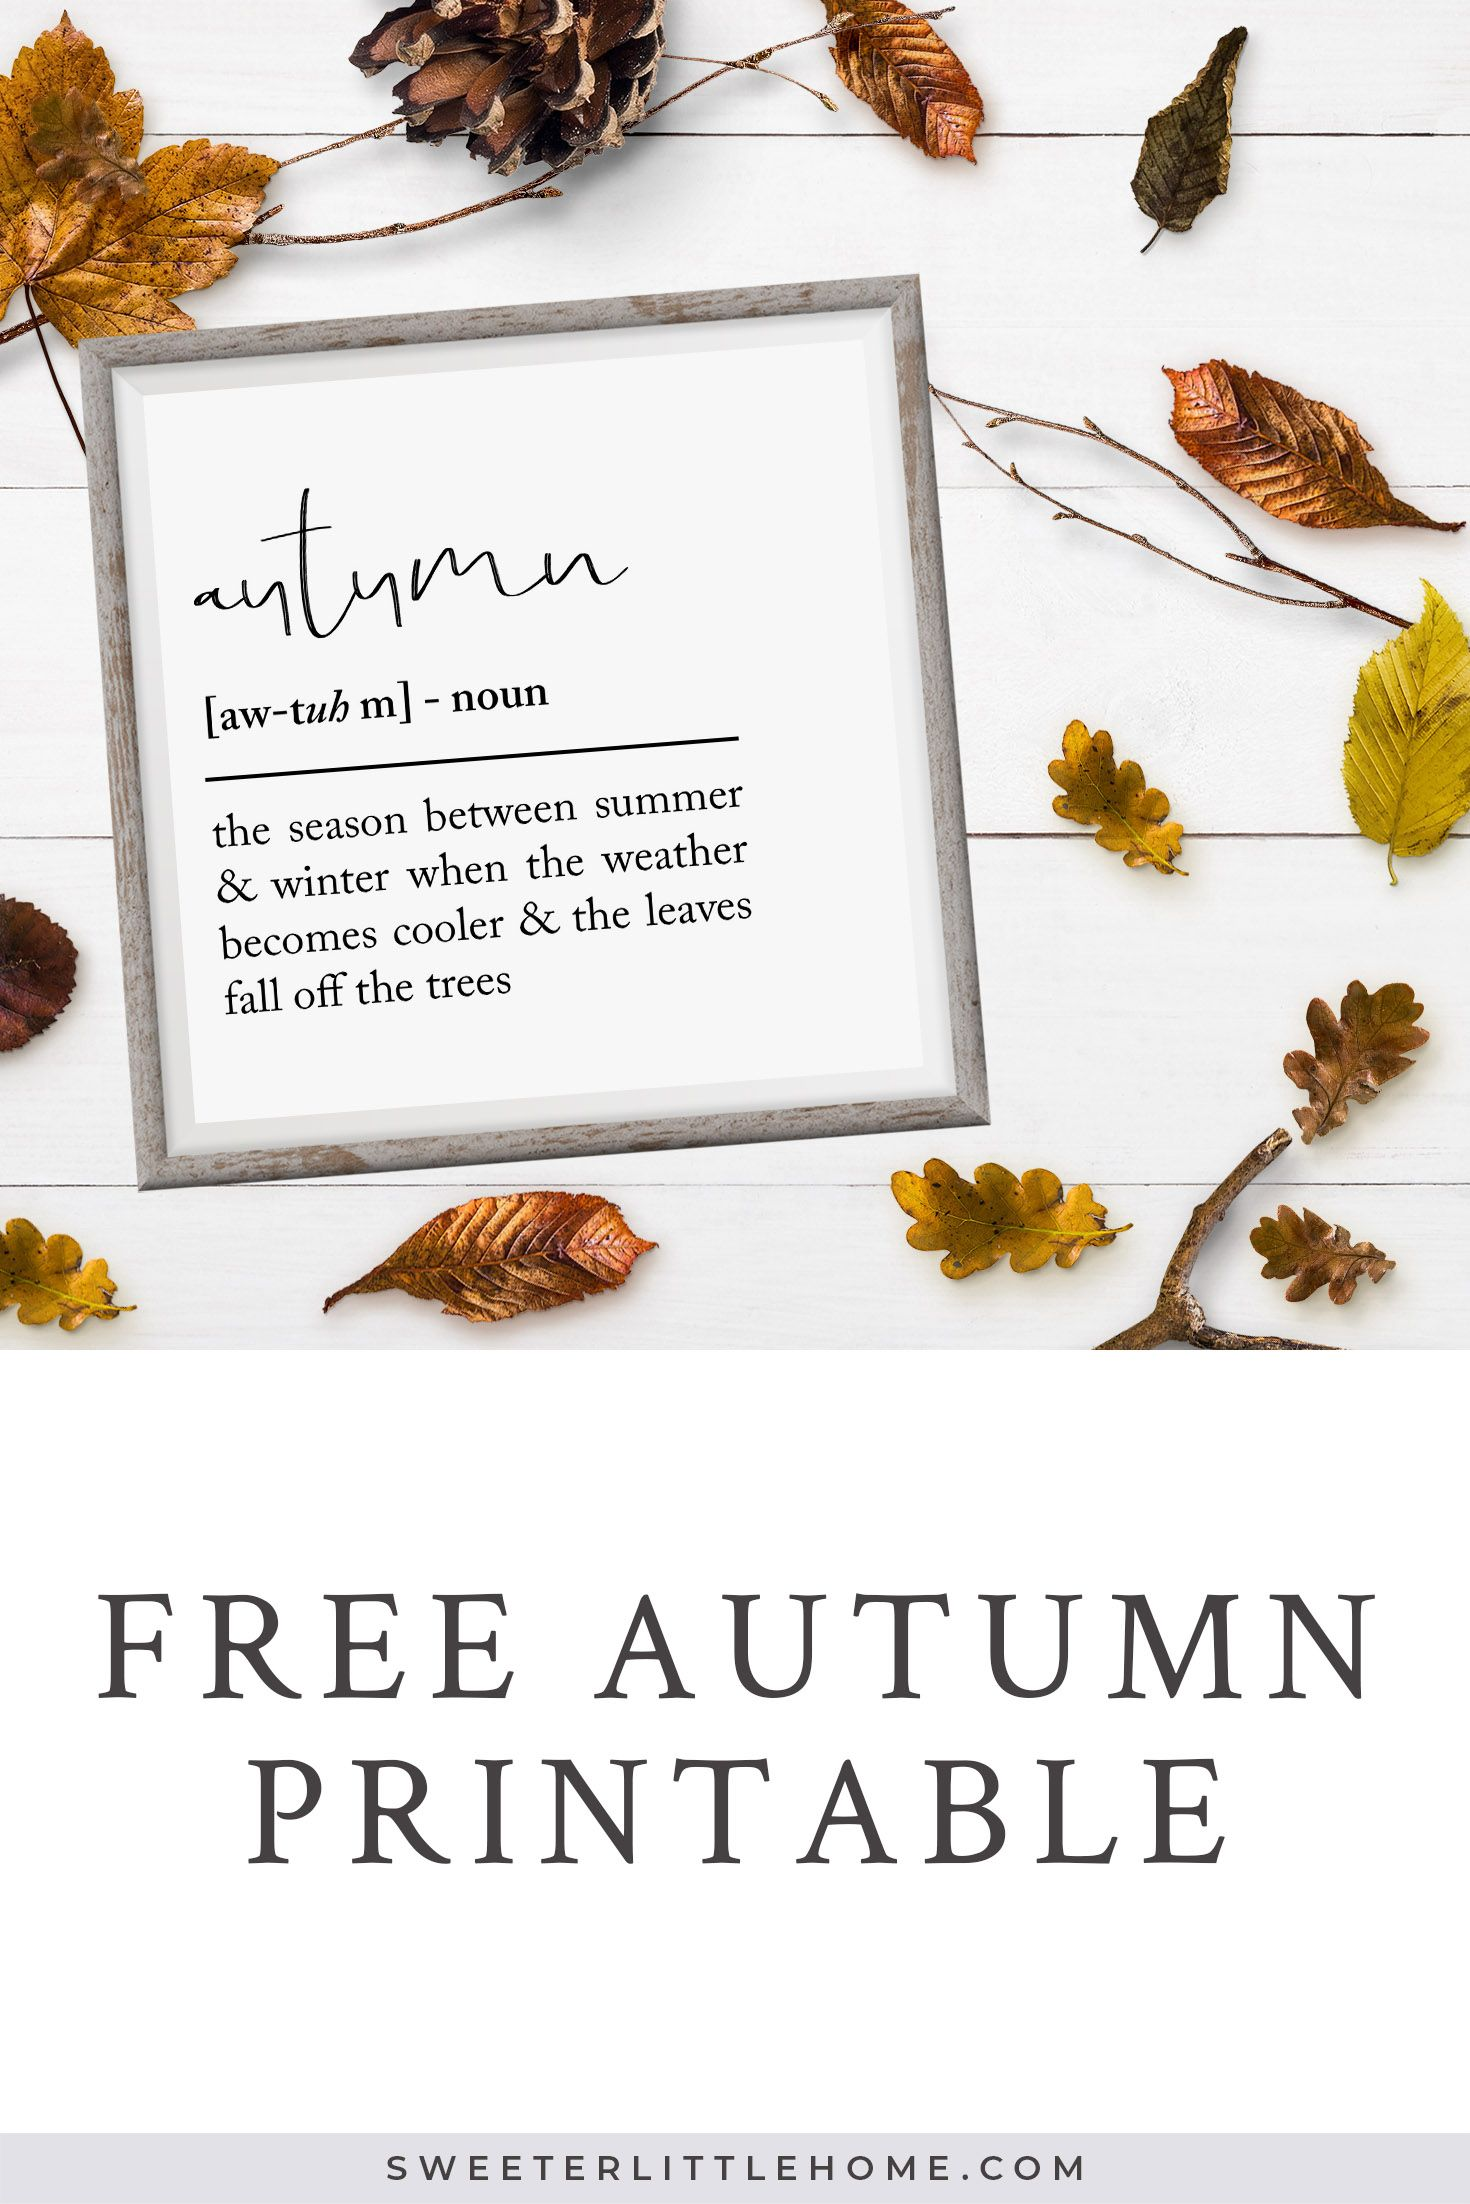 Free Autumn Printable Multiple Sizes Included